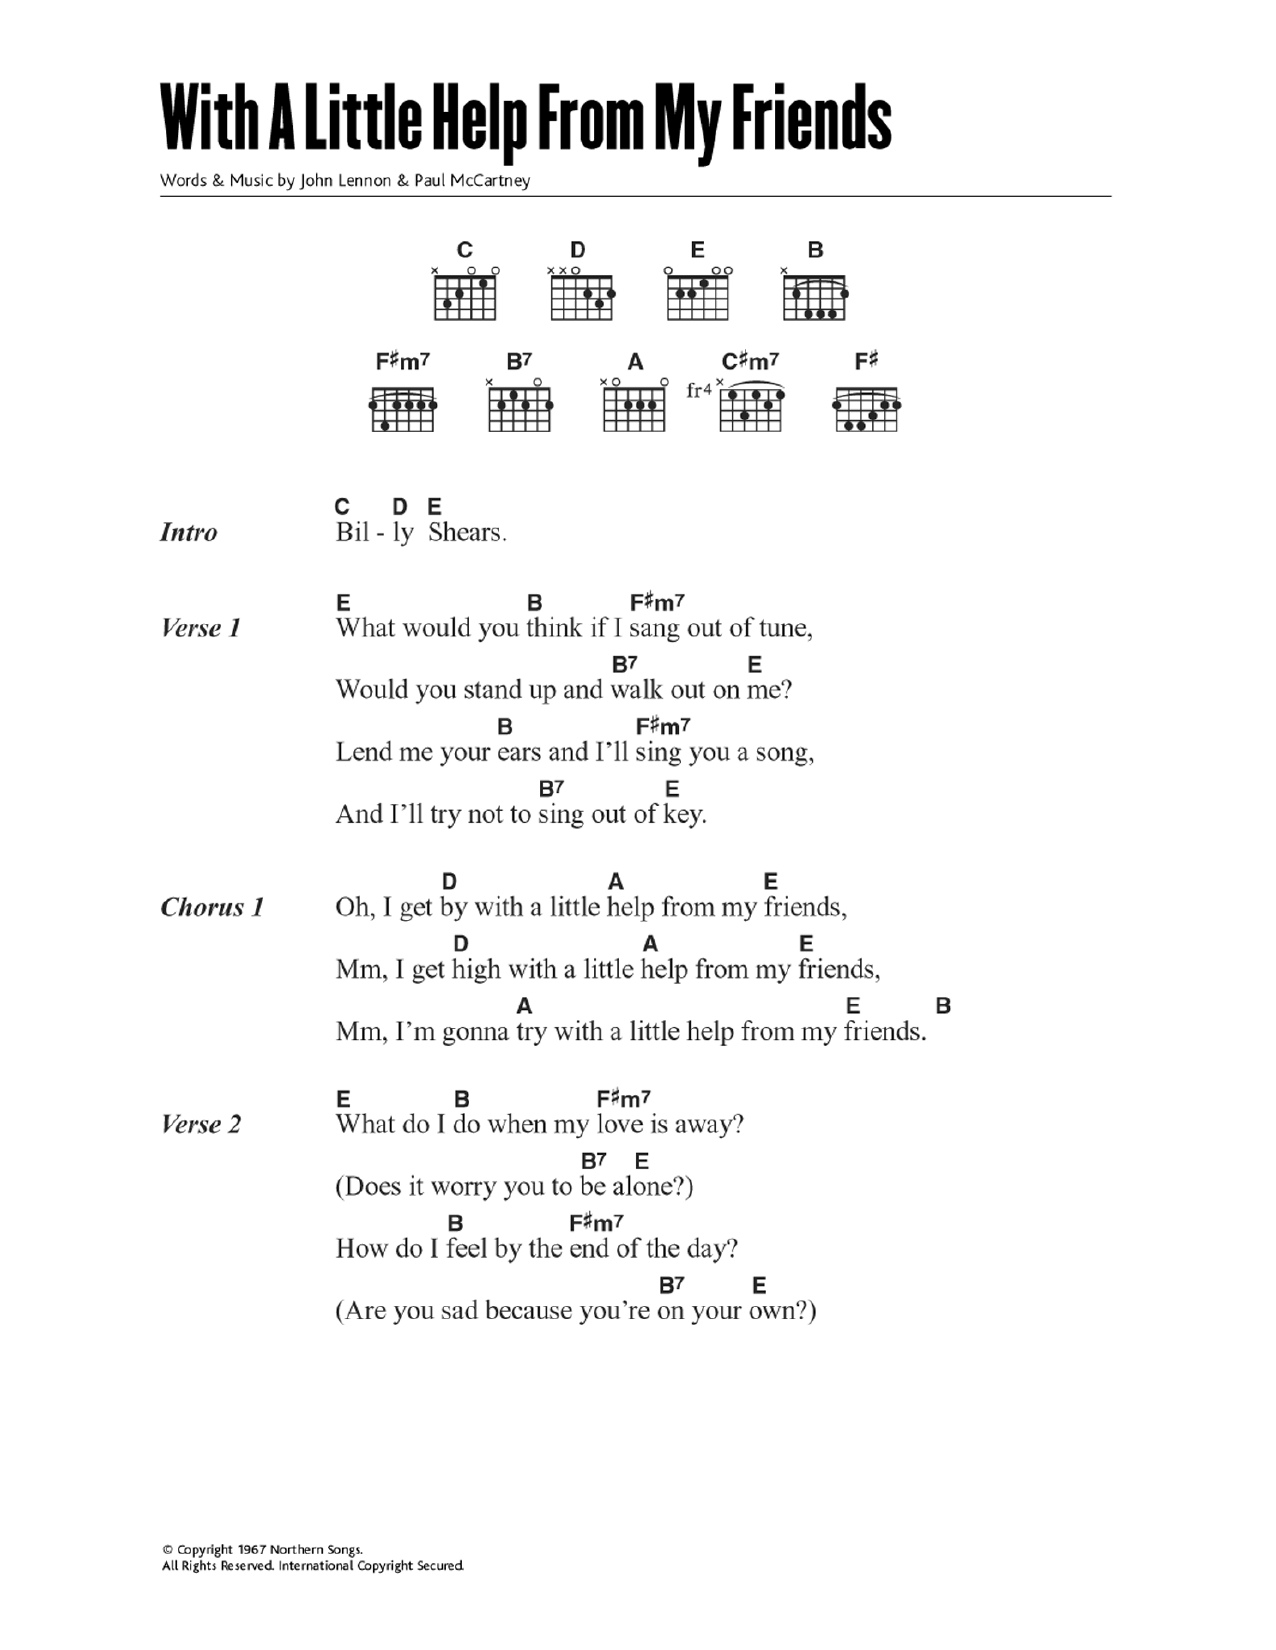 With a little help from my friends by the beatles guitar chords the most accurate tab hexwebz Choice Image